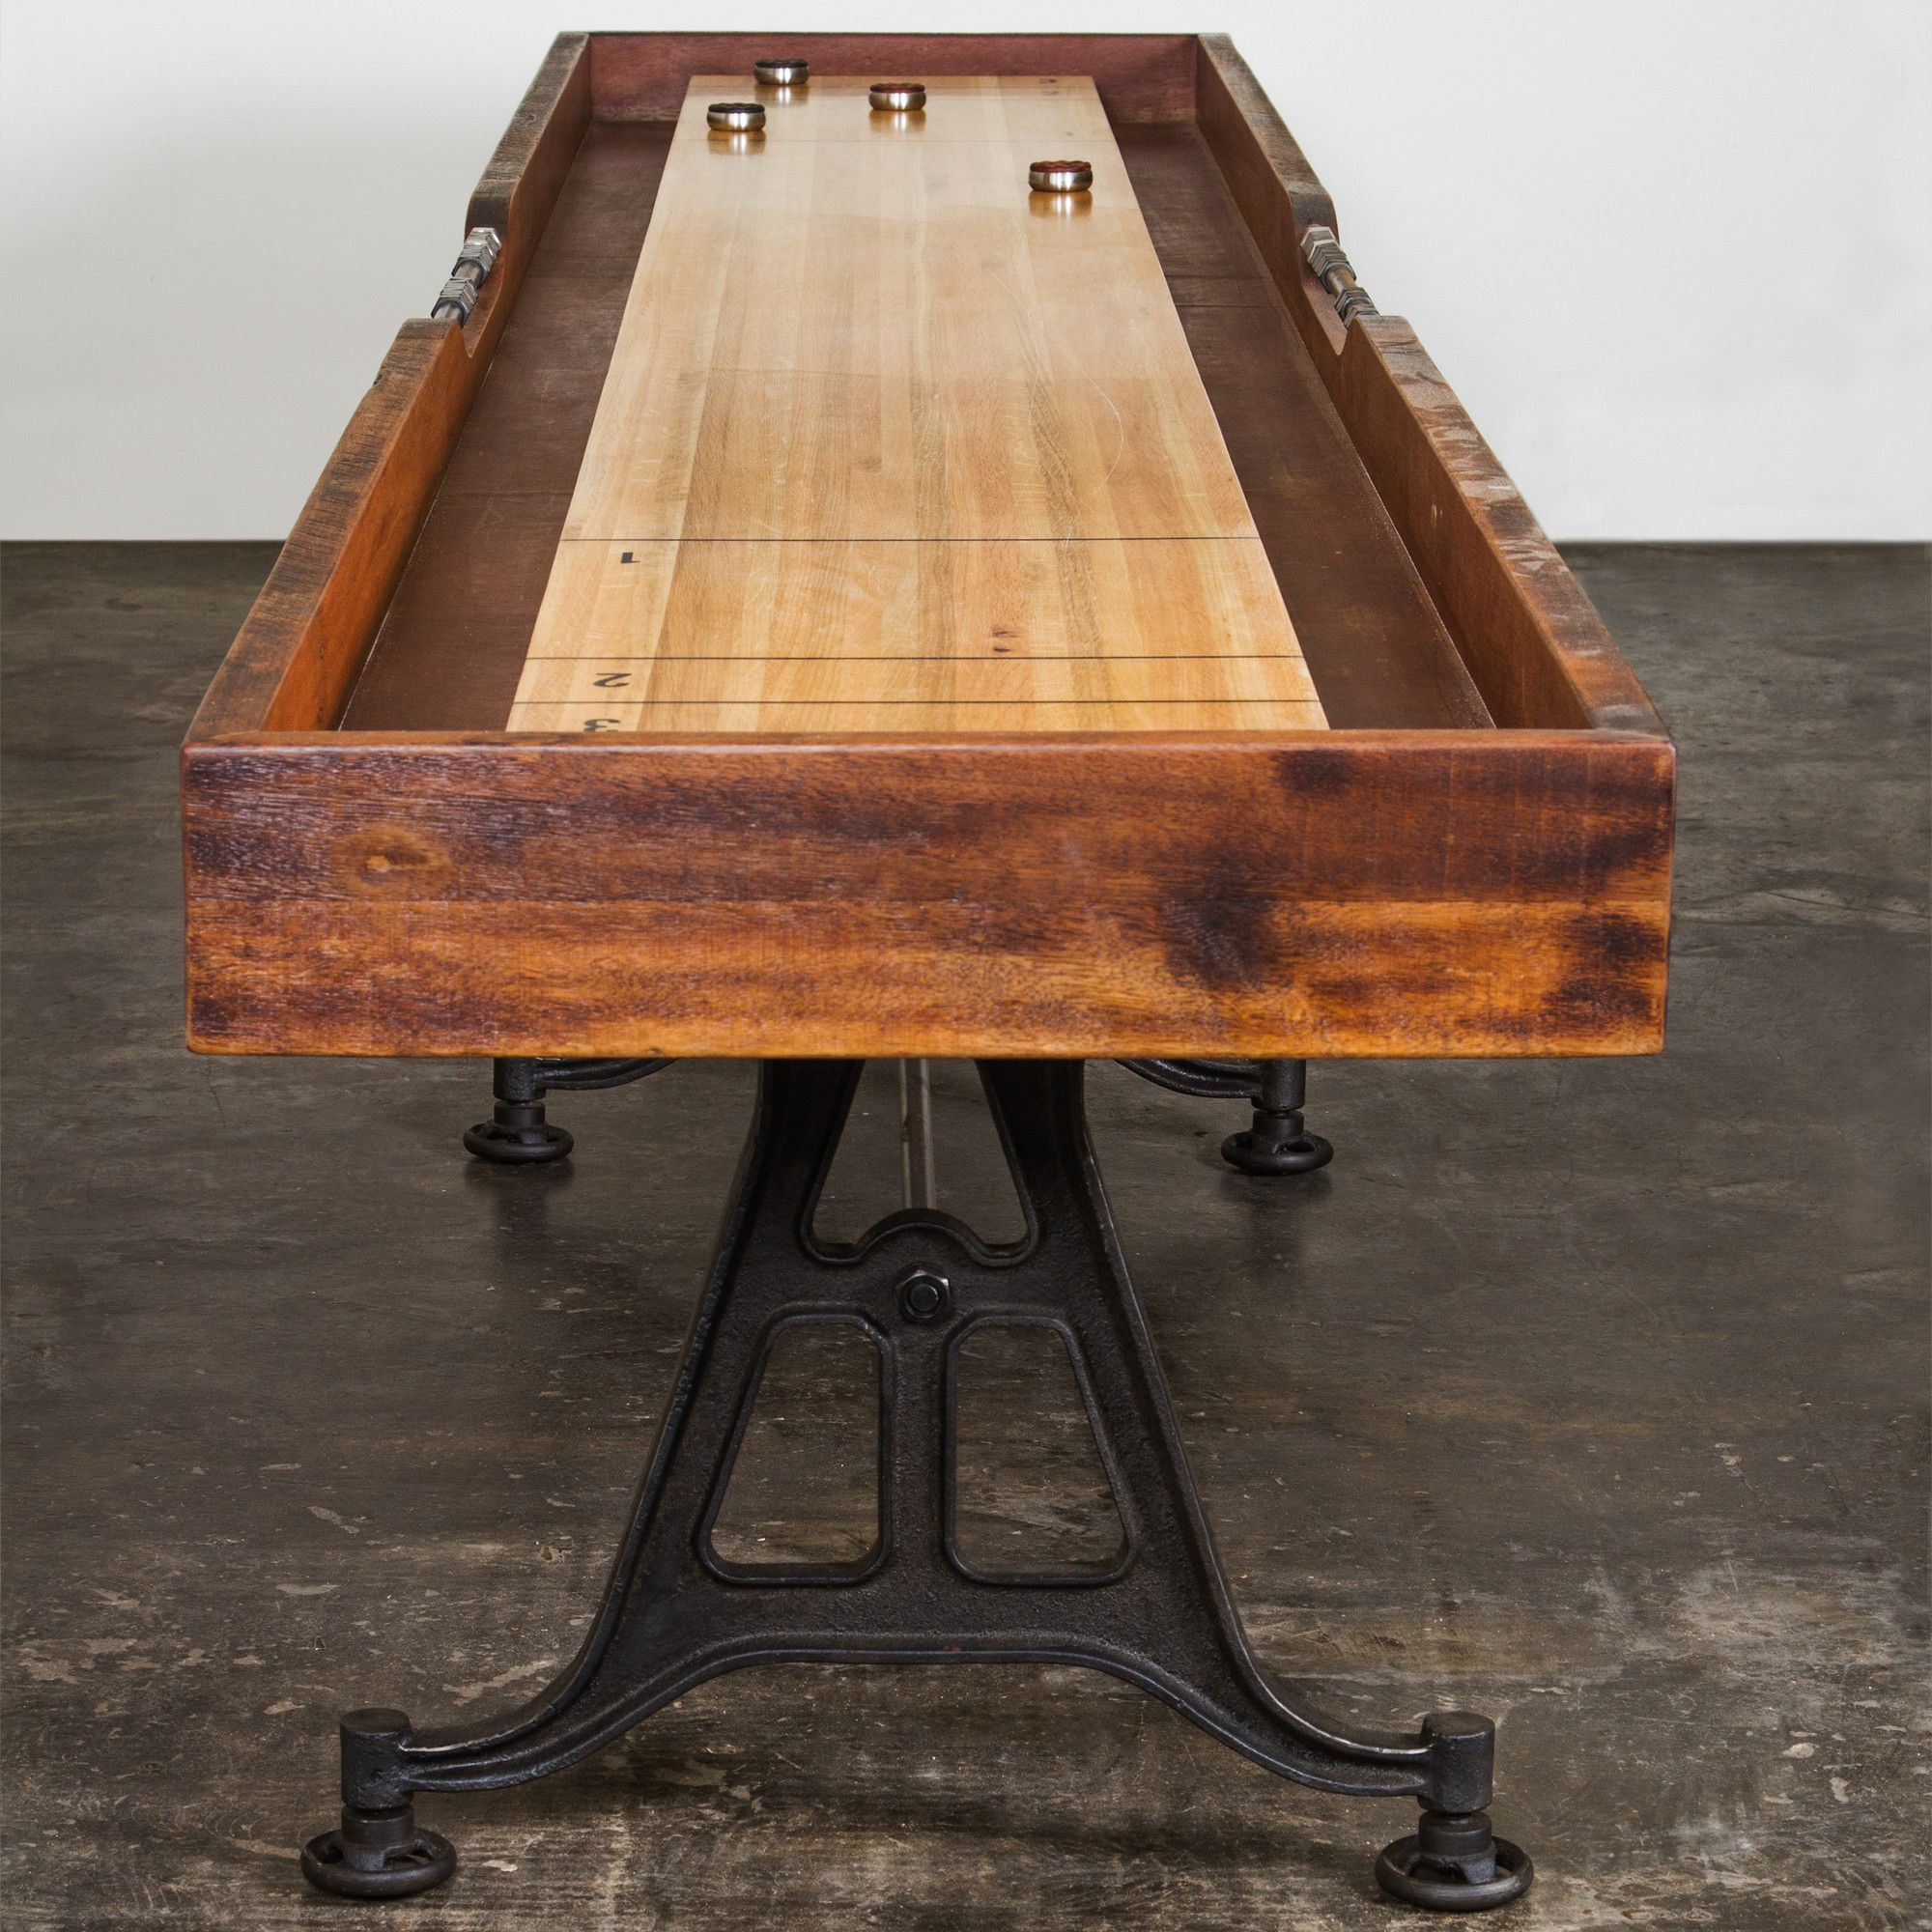 decor plan house sale shuffleboard best miraculous ideas lighting engine image cool your table for